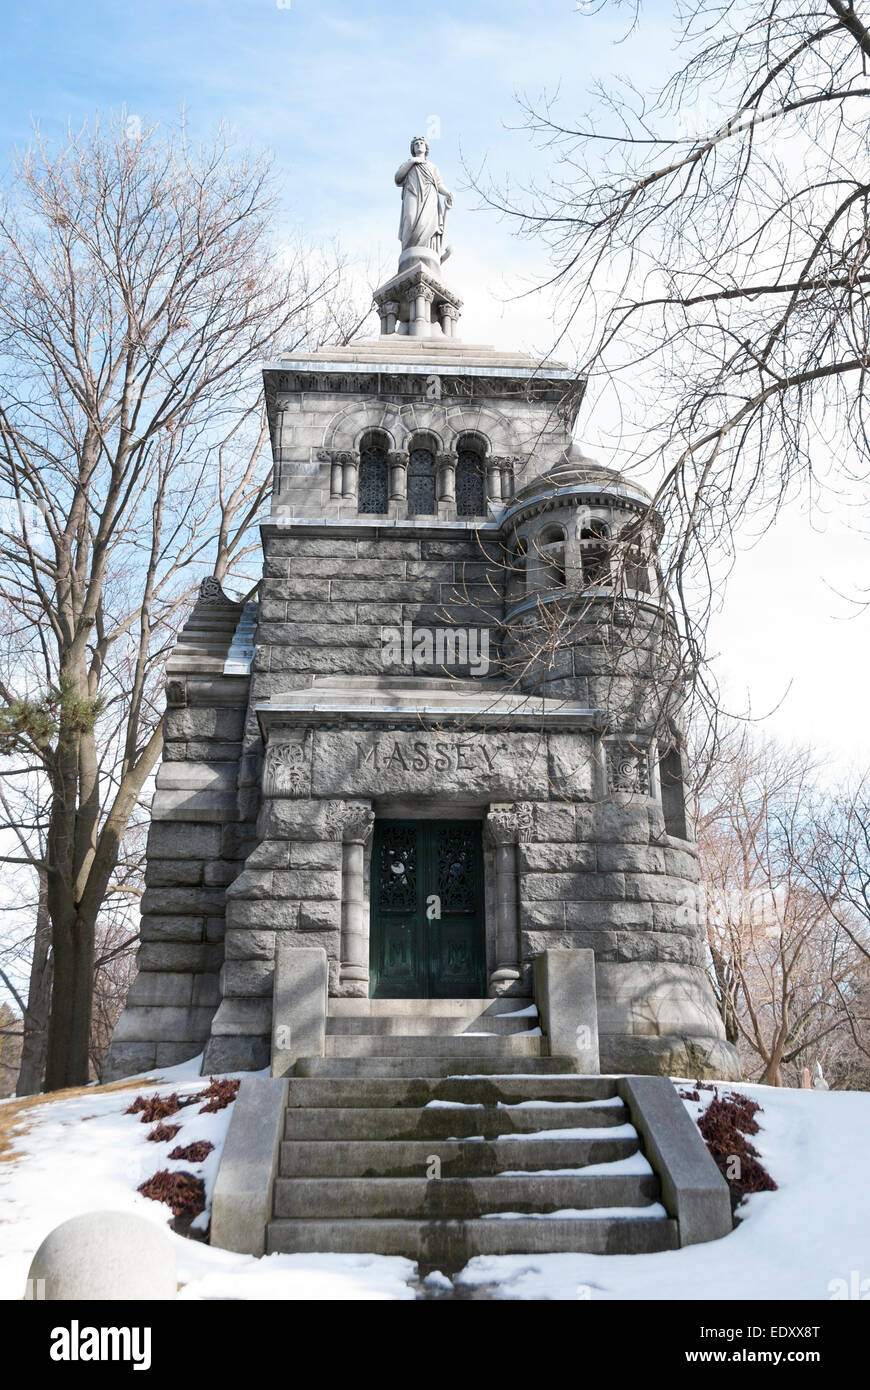 The Romanesque revival style mausoleum of Canada's well-known Massey family located in Toronto's Mount Pleasant - Stock Image